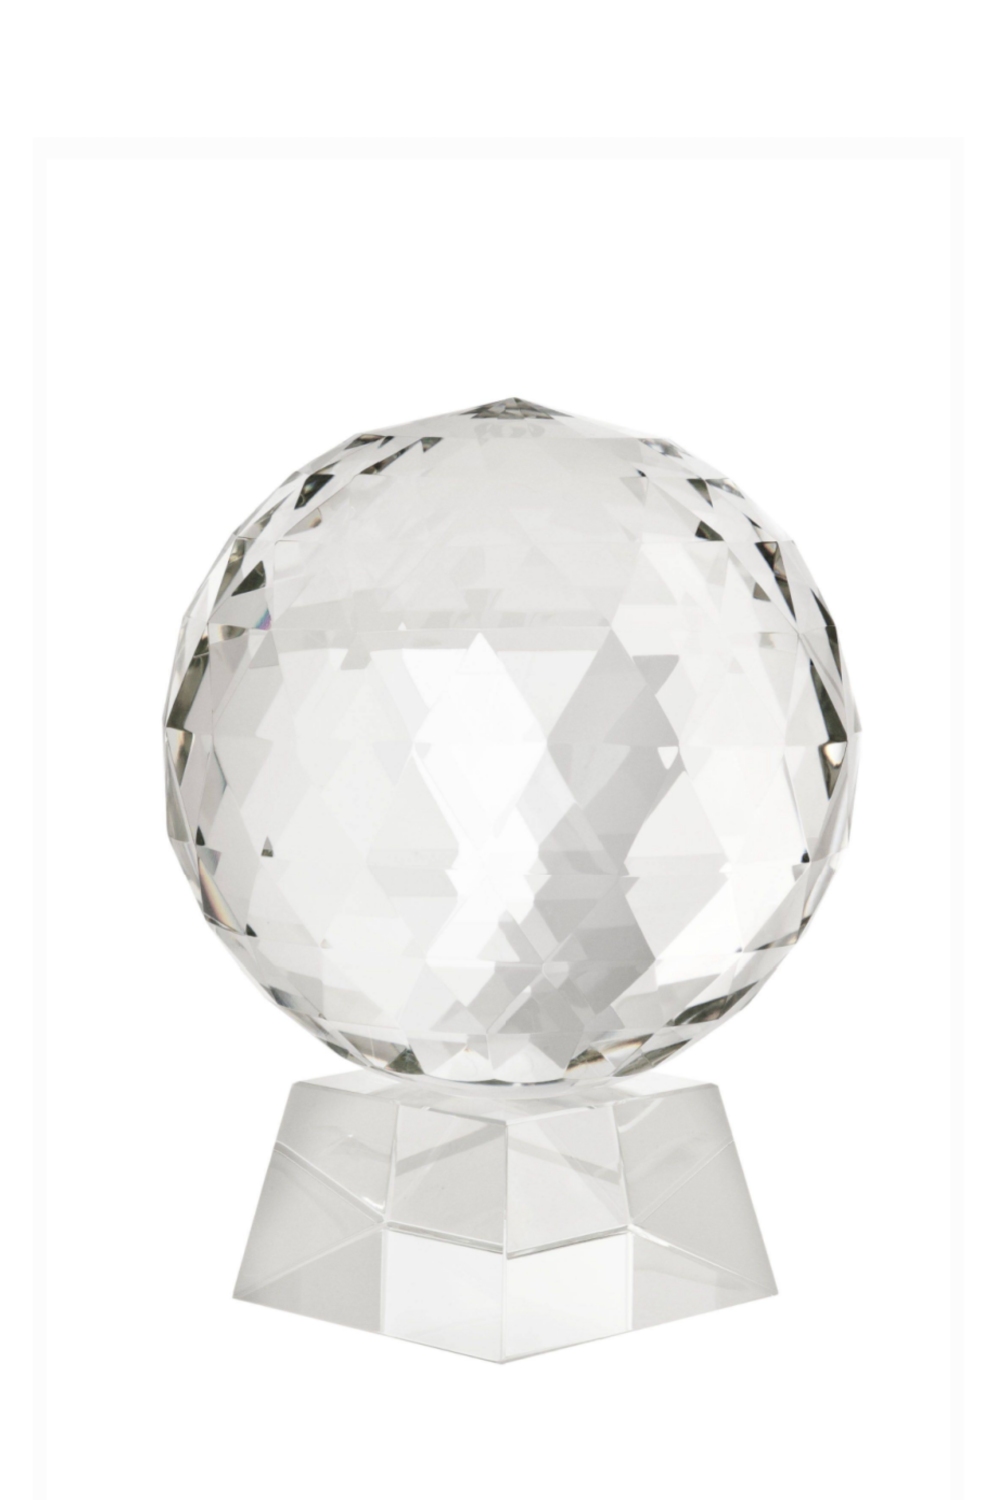 Round Crystal Ball | Eichholtz Ruben | OROA Modern & Luxury Furniture